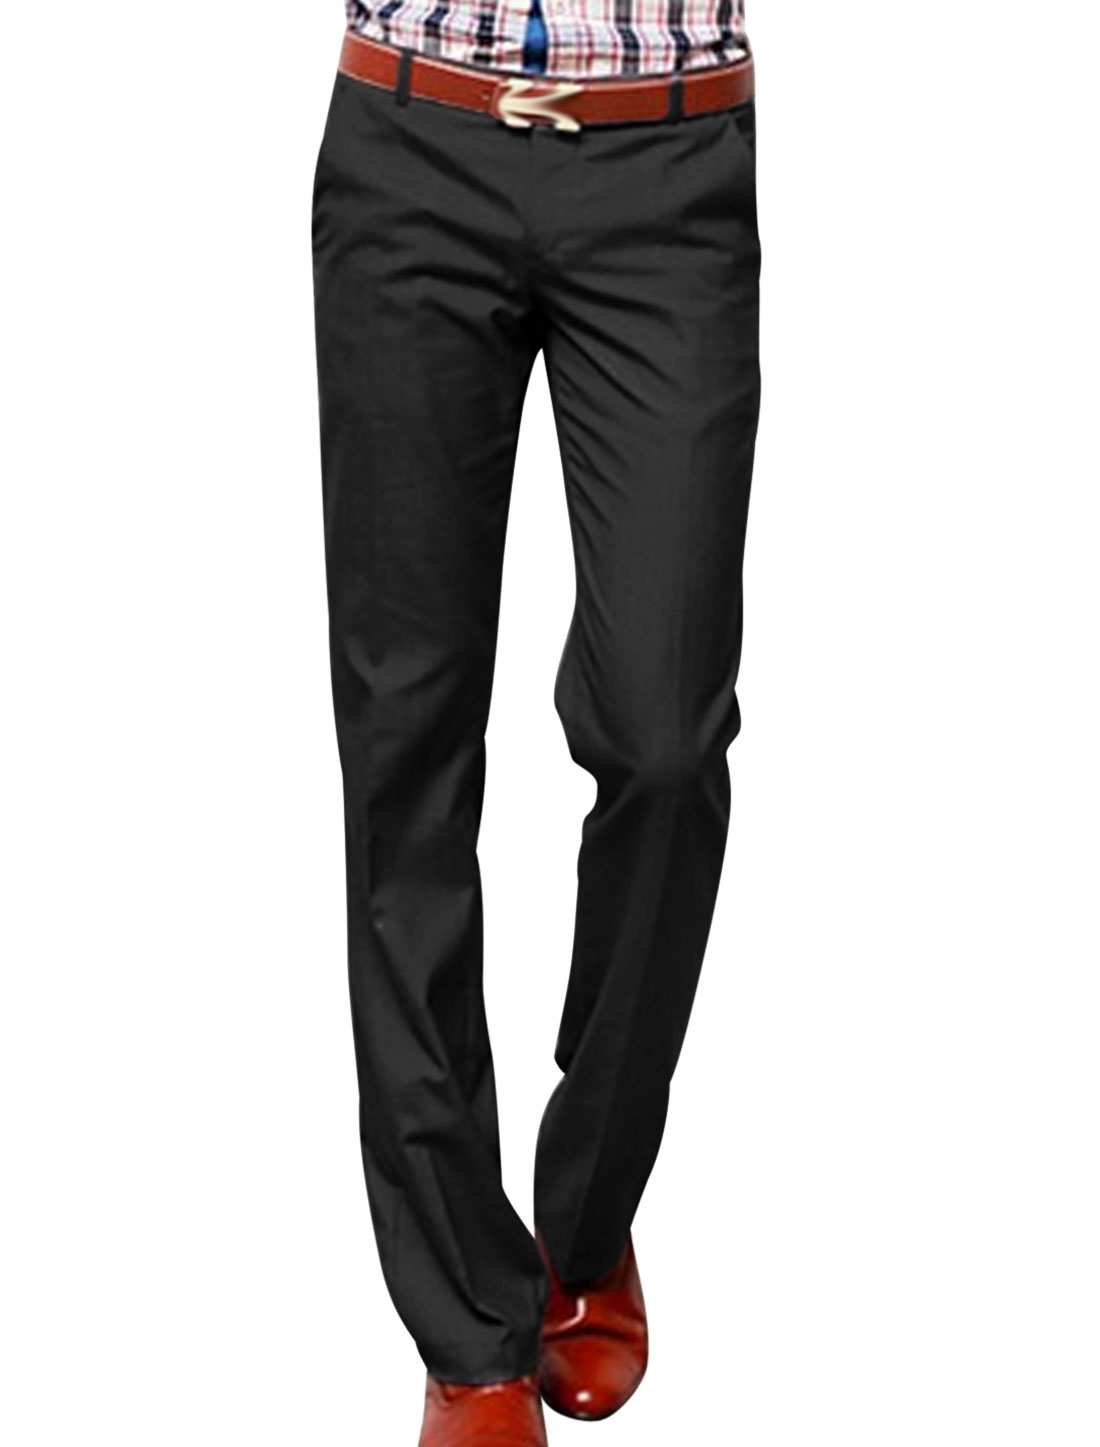 Men Zip Fly Mid Rise Cozy Fit Leisure Pants Black W30